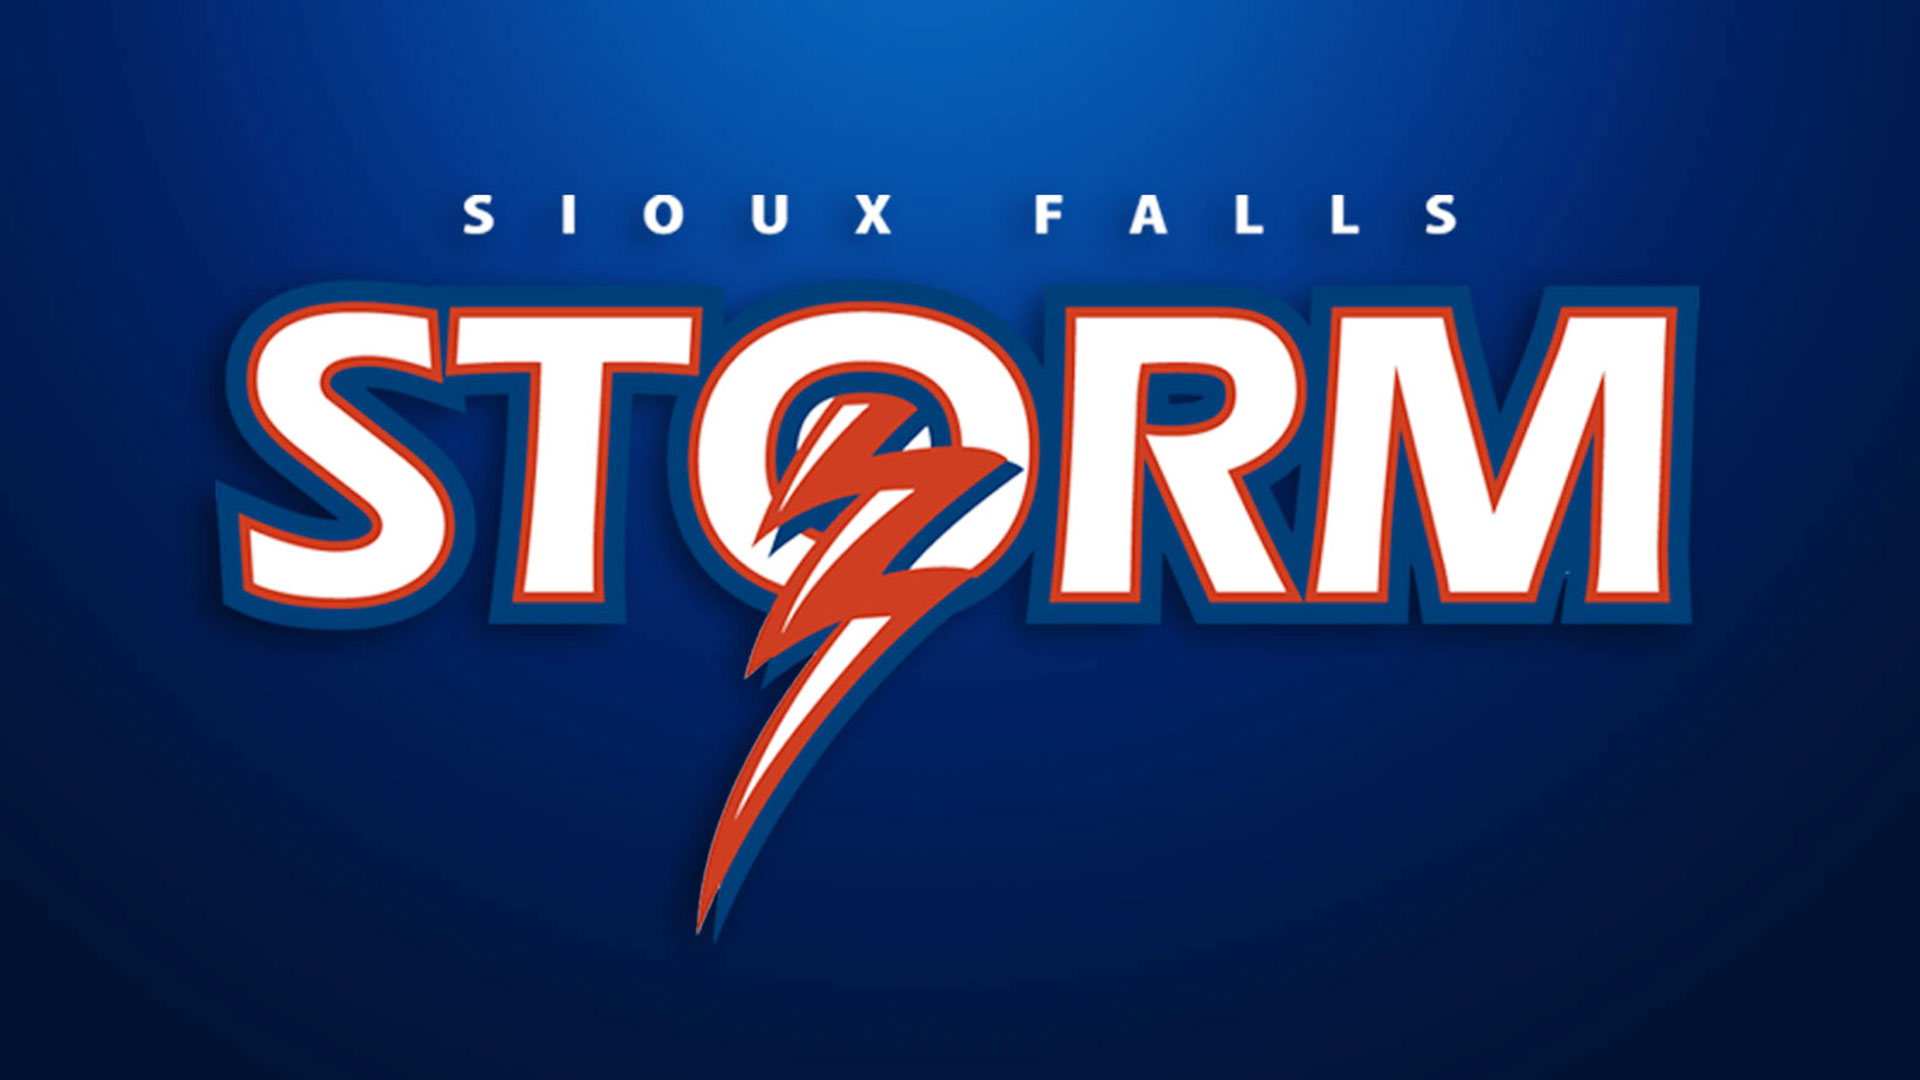 KELO Sioux Falls Storm Football